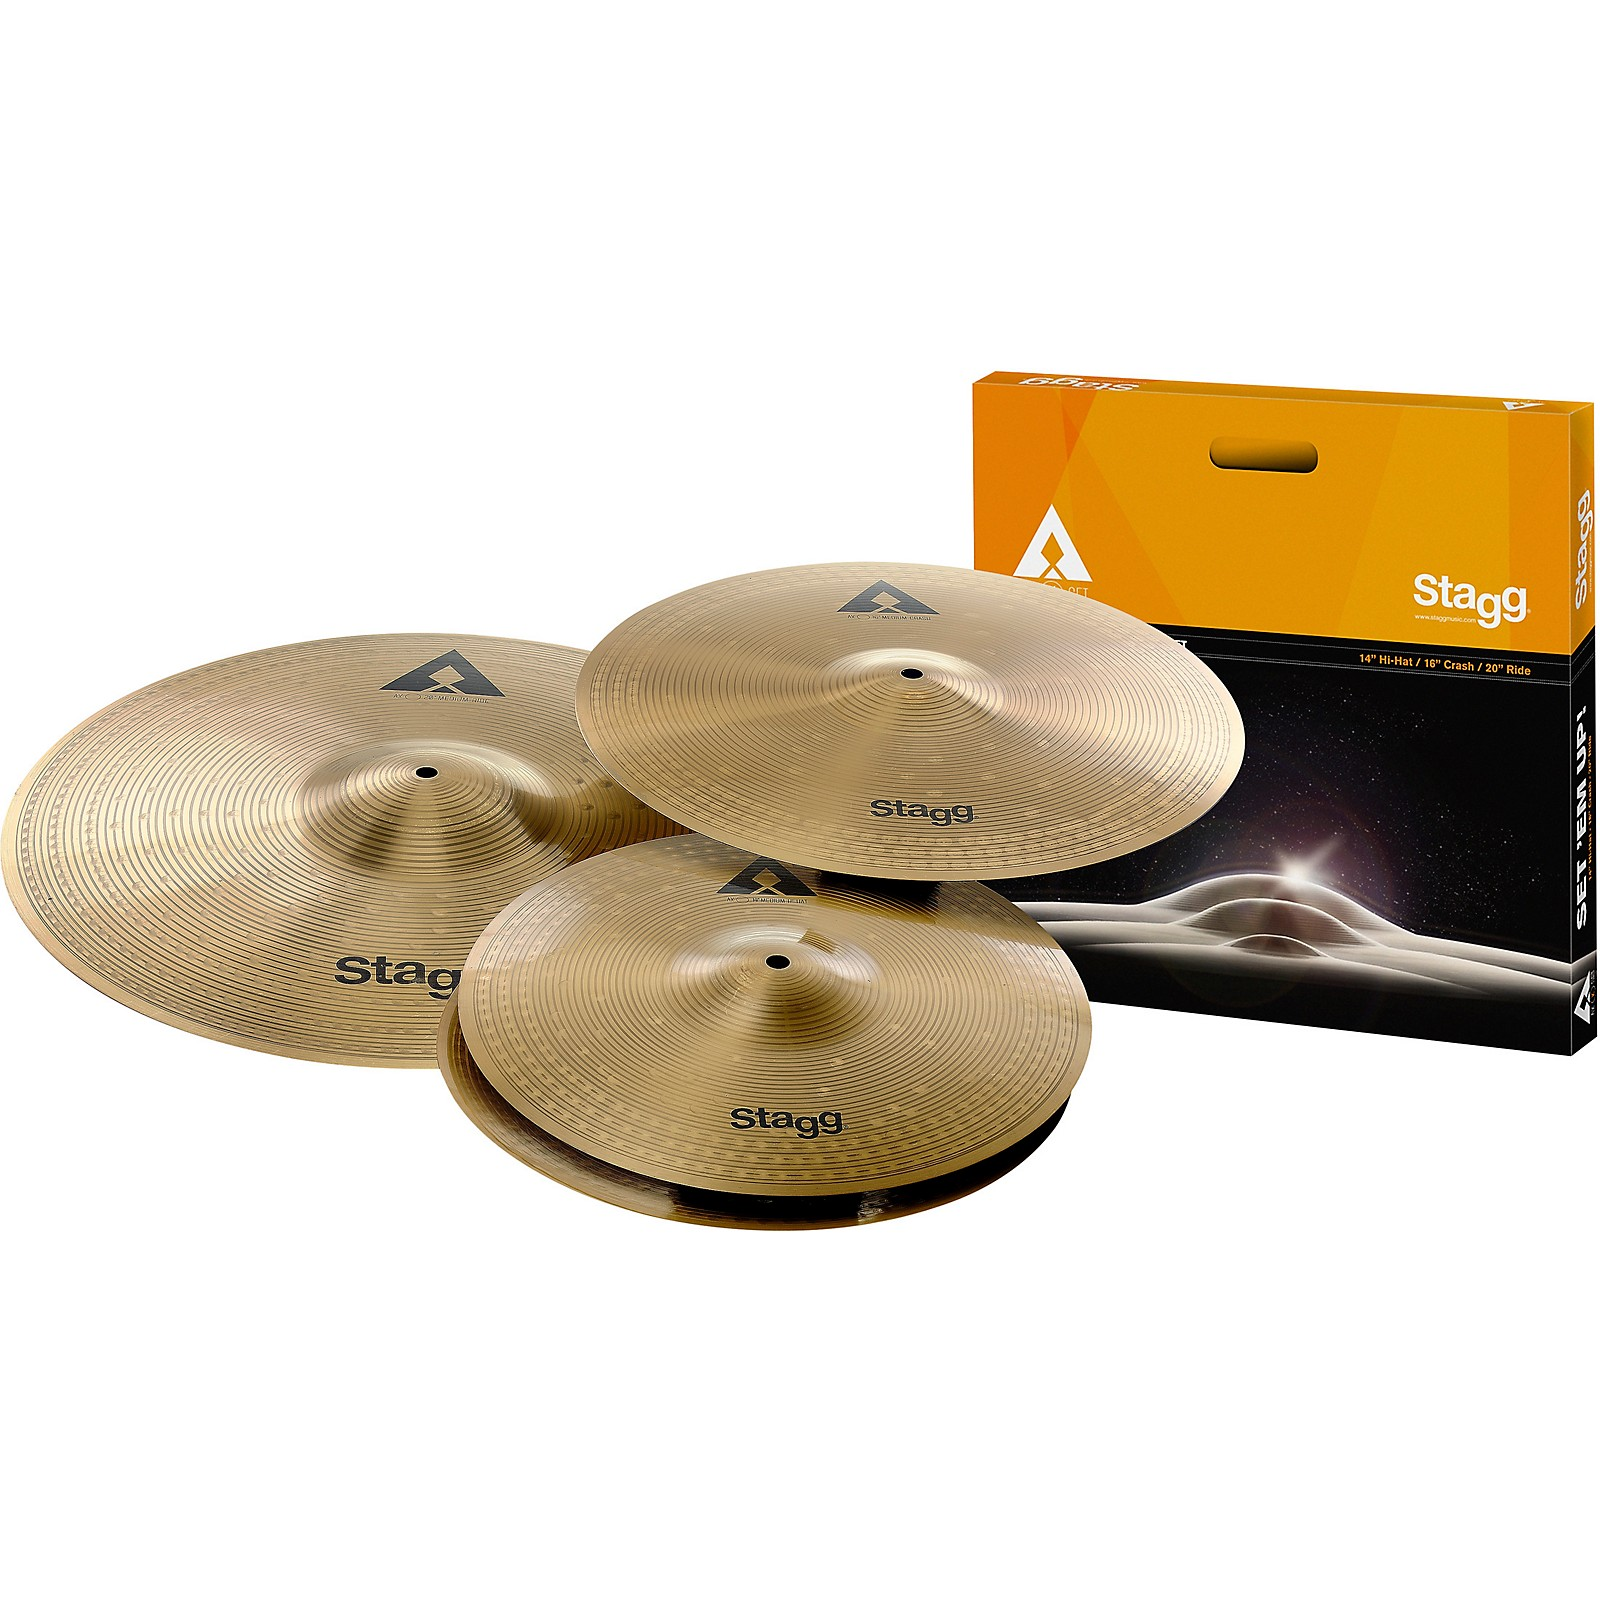 Stagg AX Series Deluxe Cymbal Set